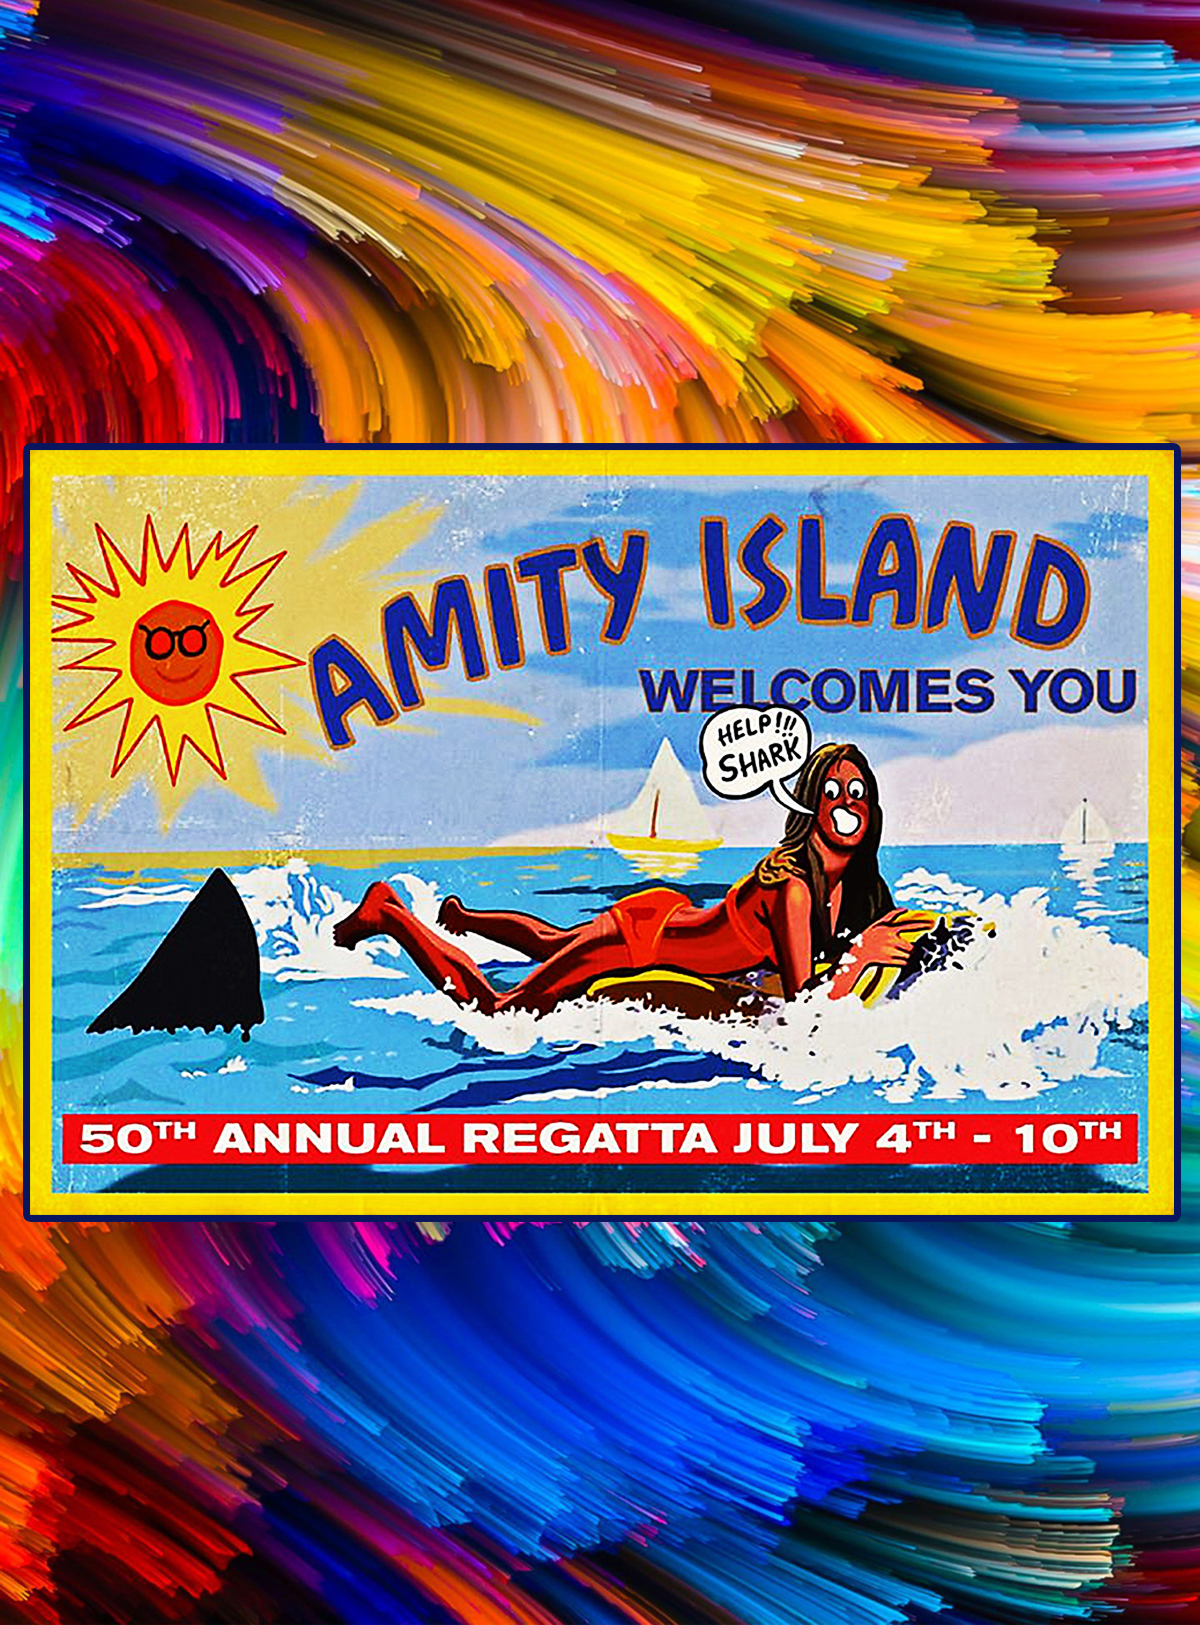 Amity island welcomes you poster - A4